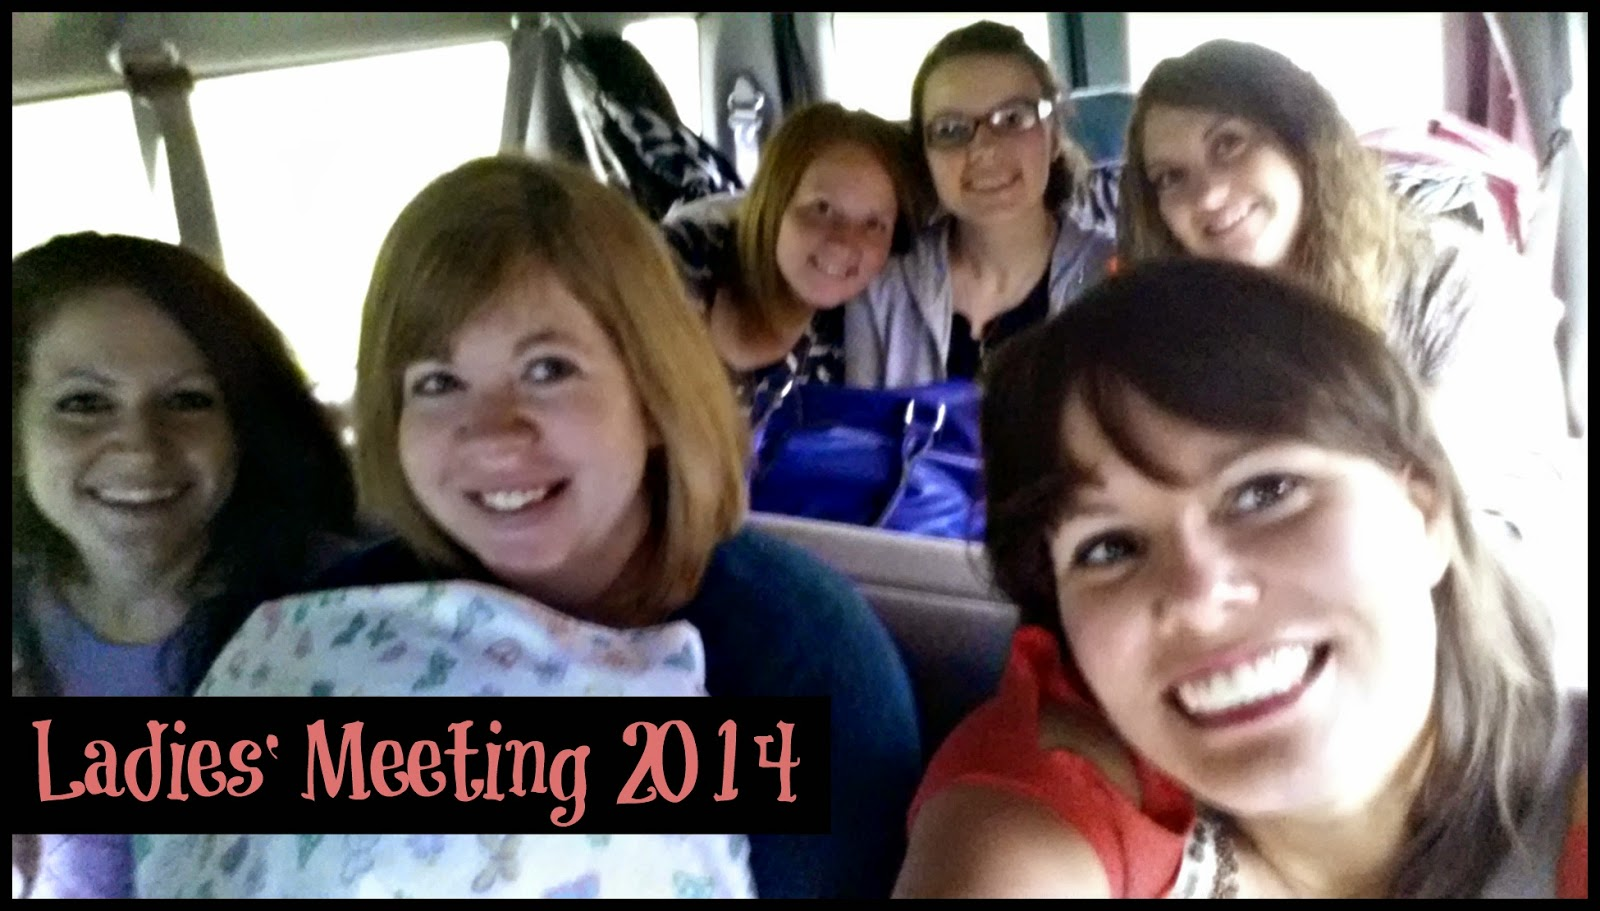 Ladies' Weekend | #ladiesmeeting #churchretreat #weekendfun